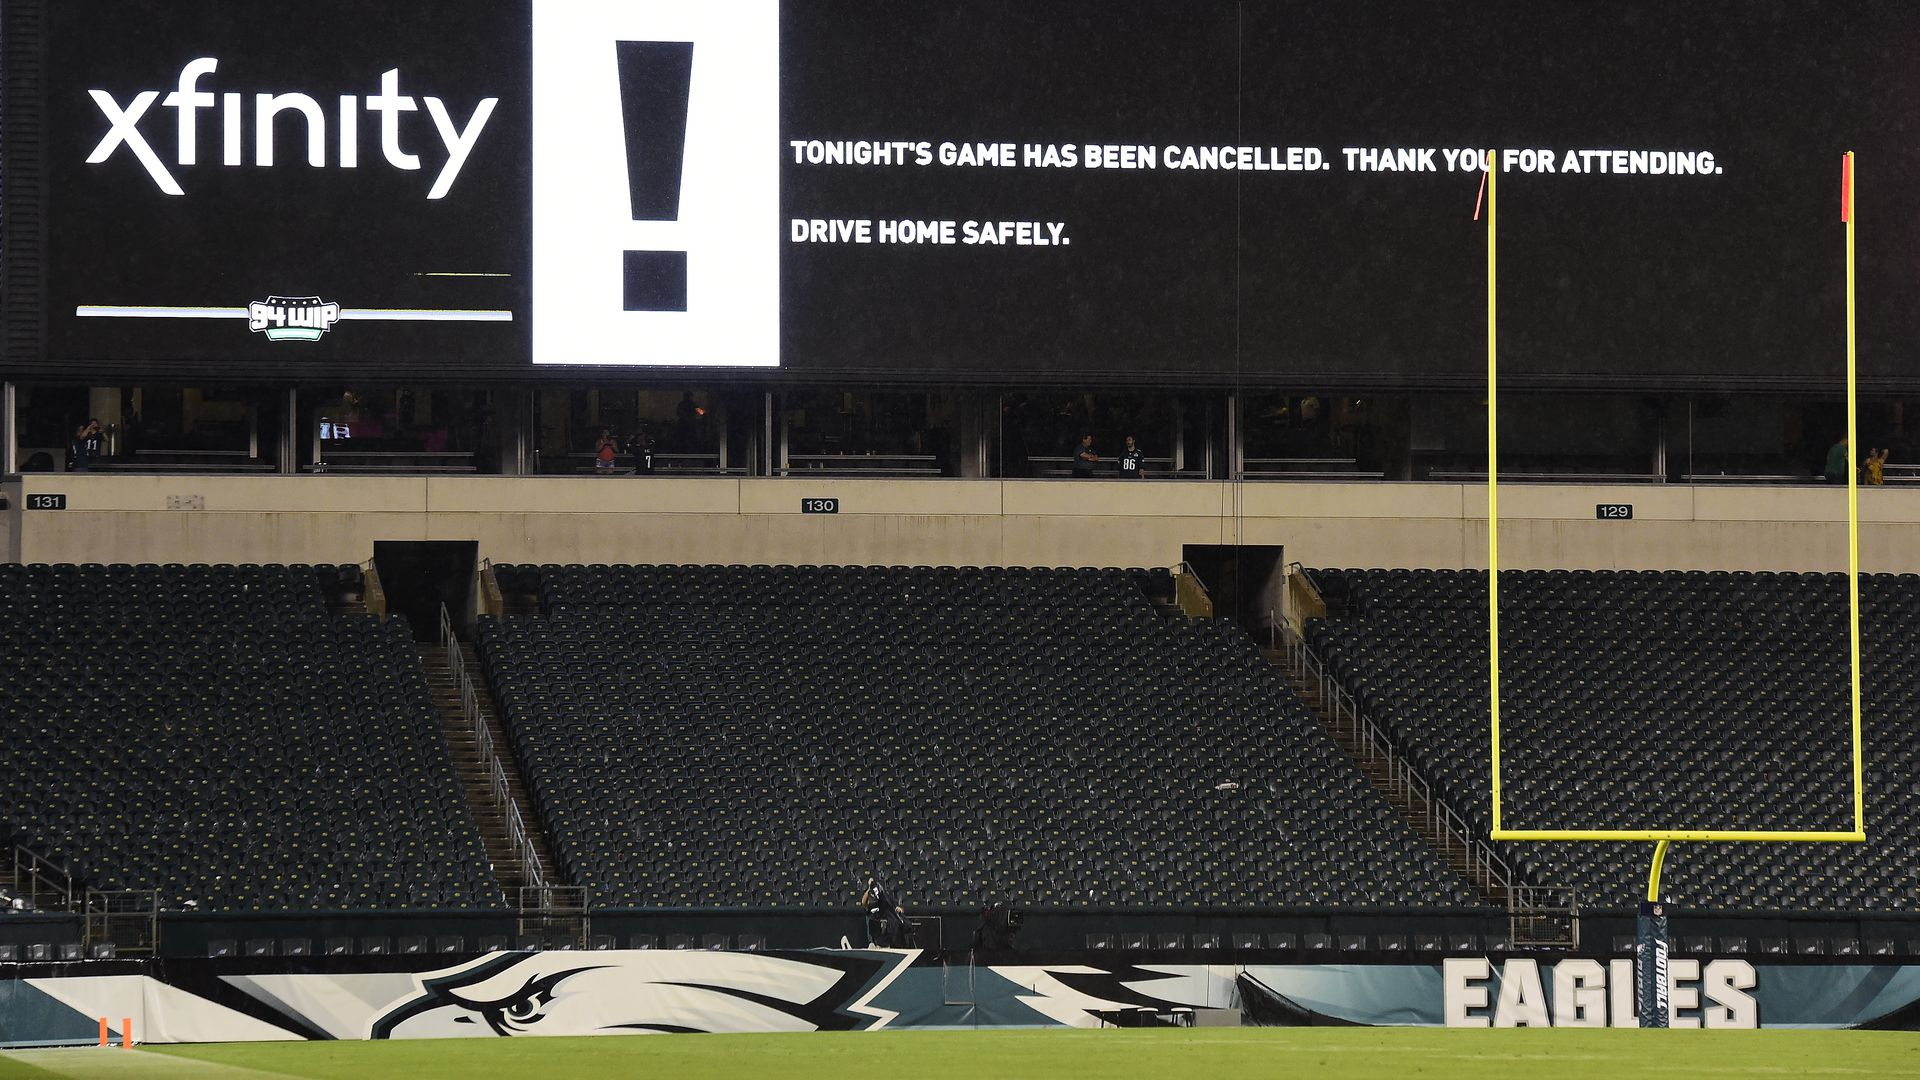 Eagles game canceled